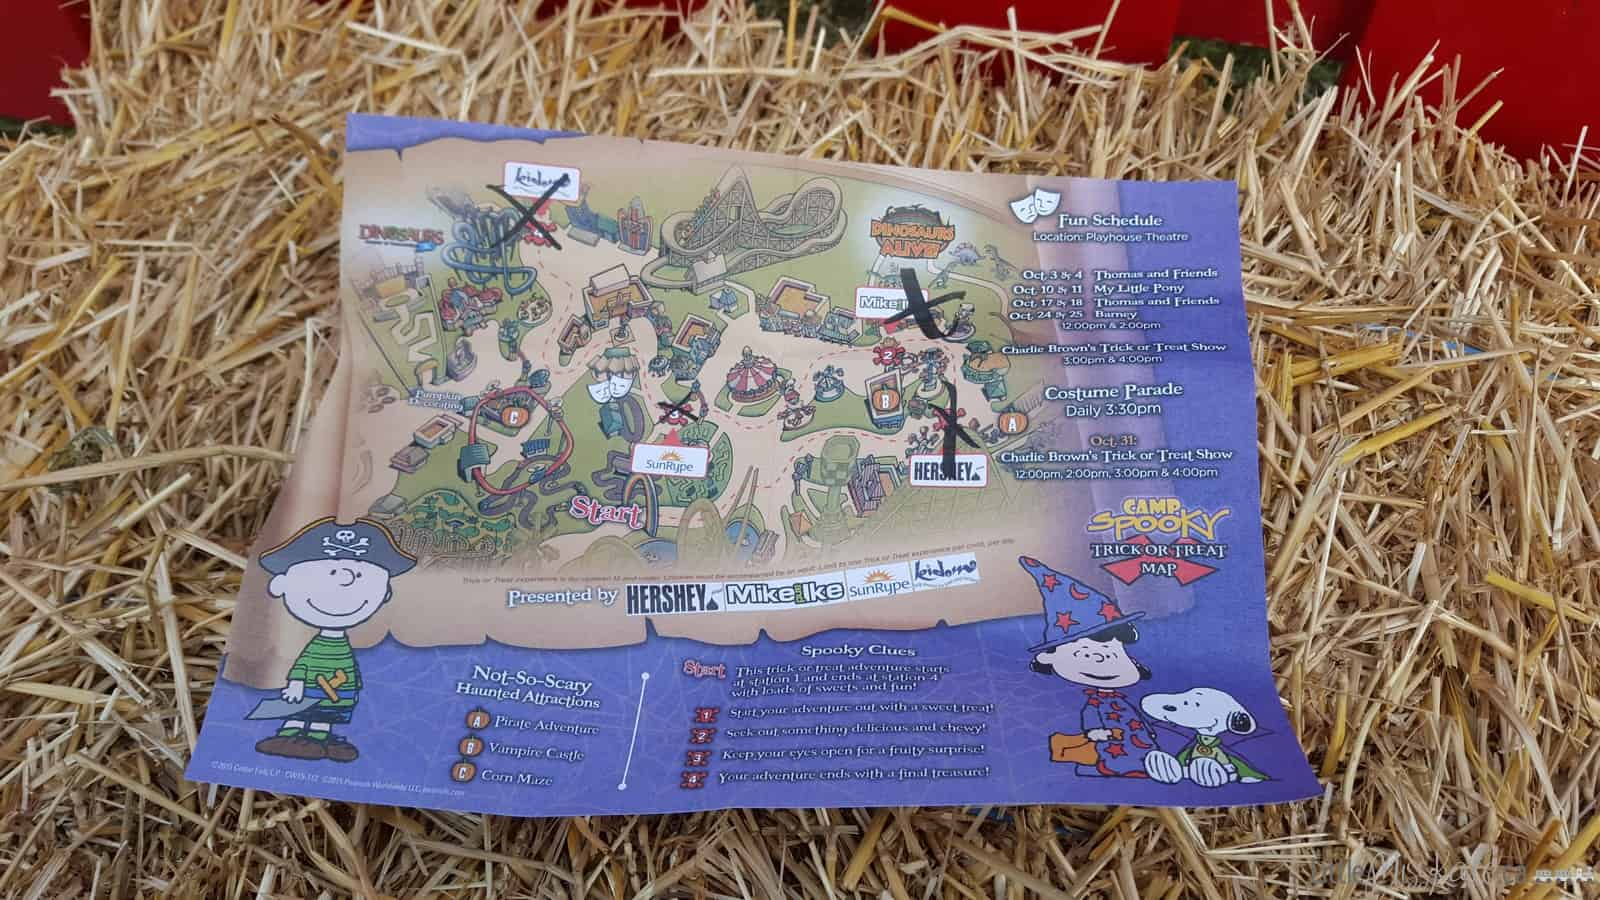 Camp spooky canadas wonderland halloween tick or treating map